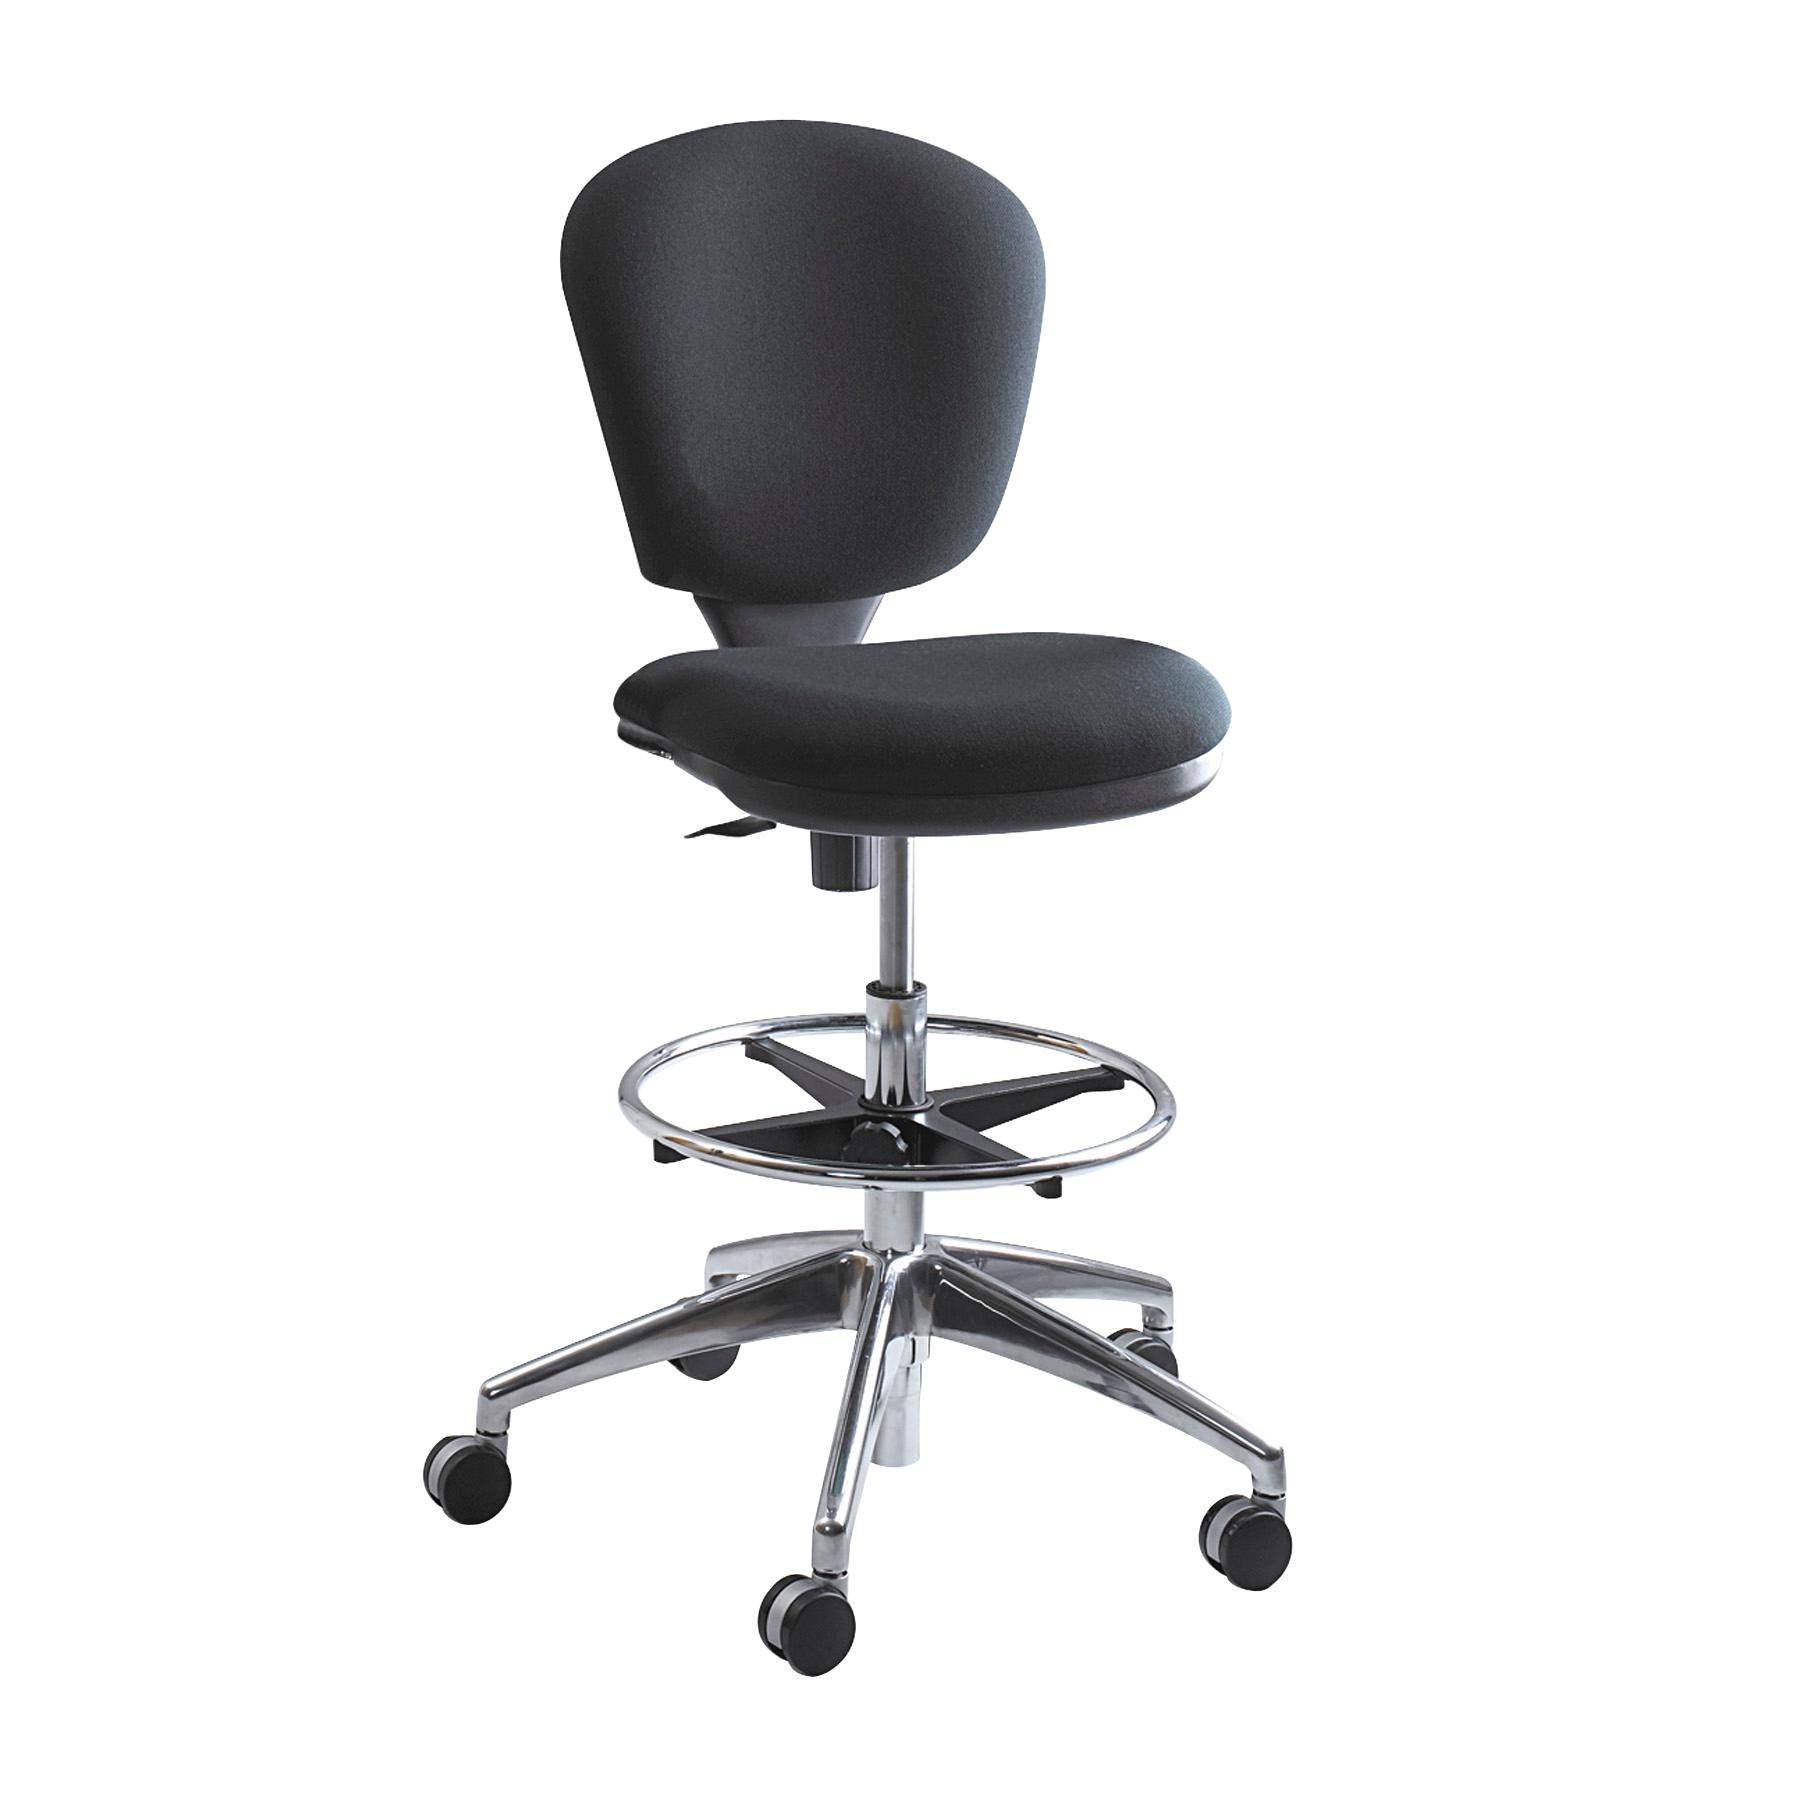 chair seat stool extended height warehouse seat office chair